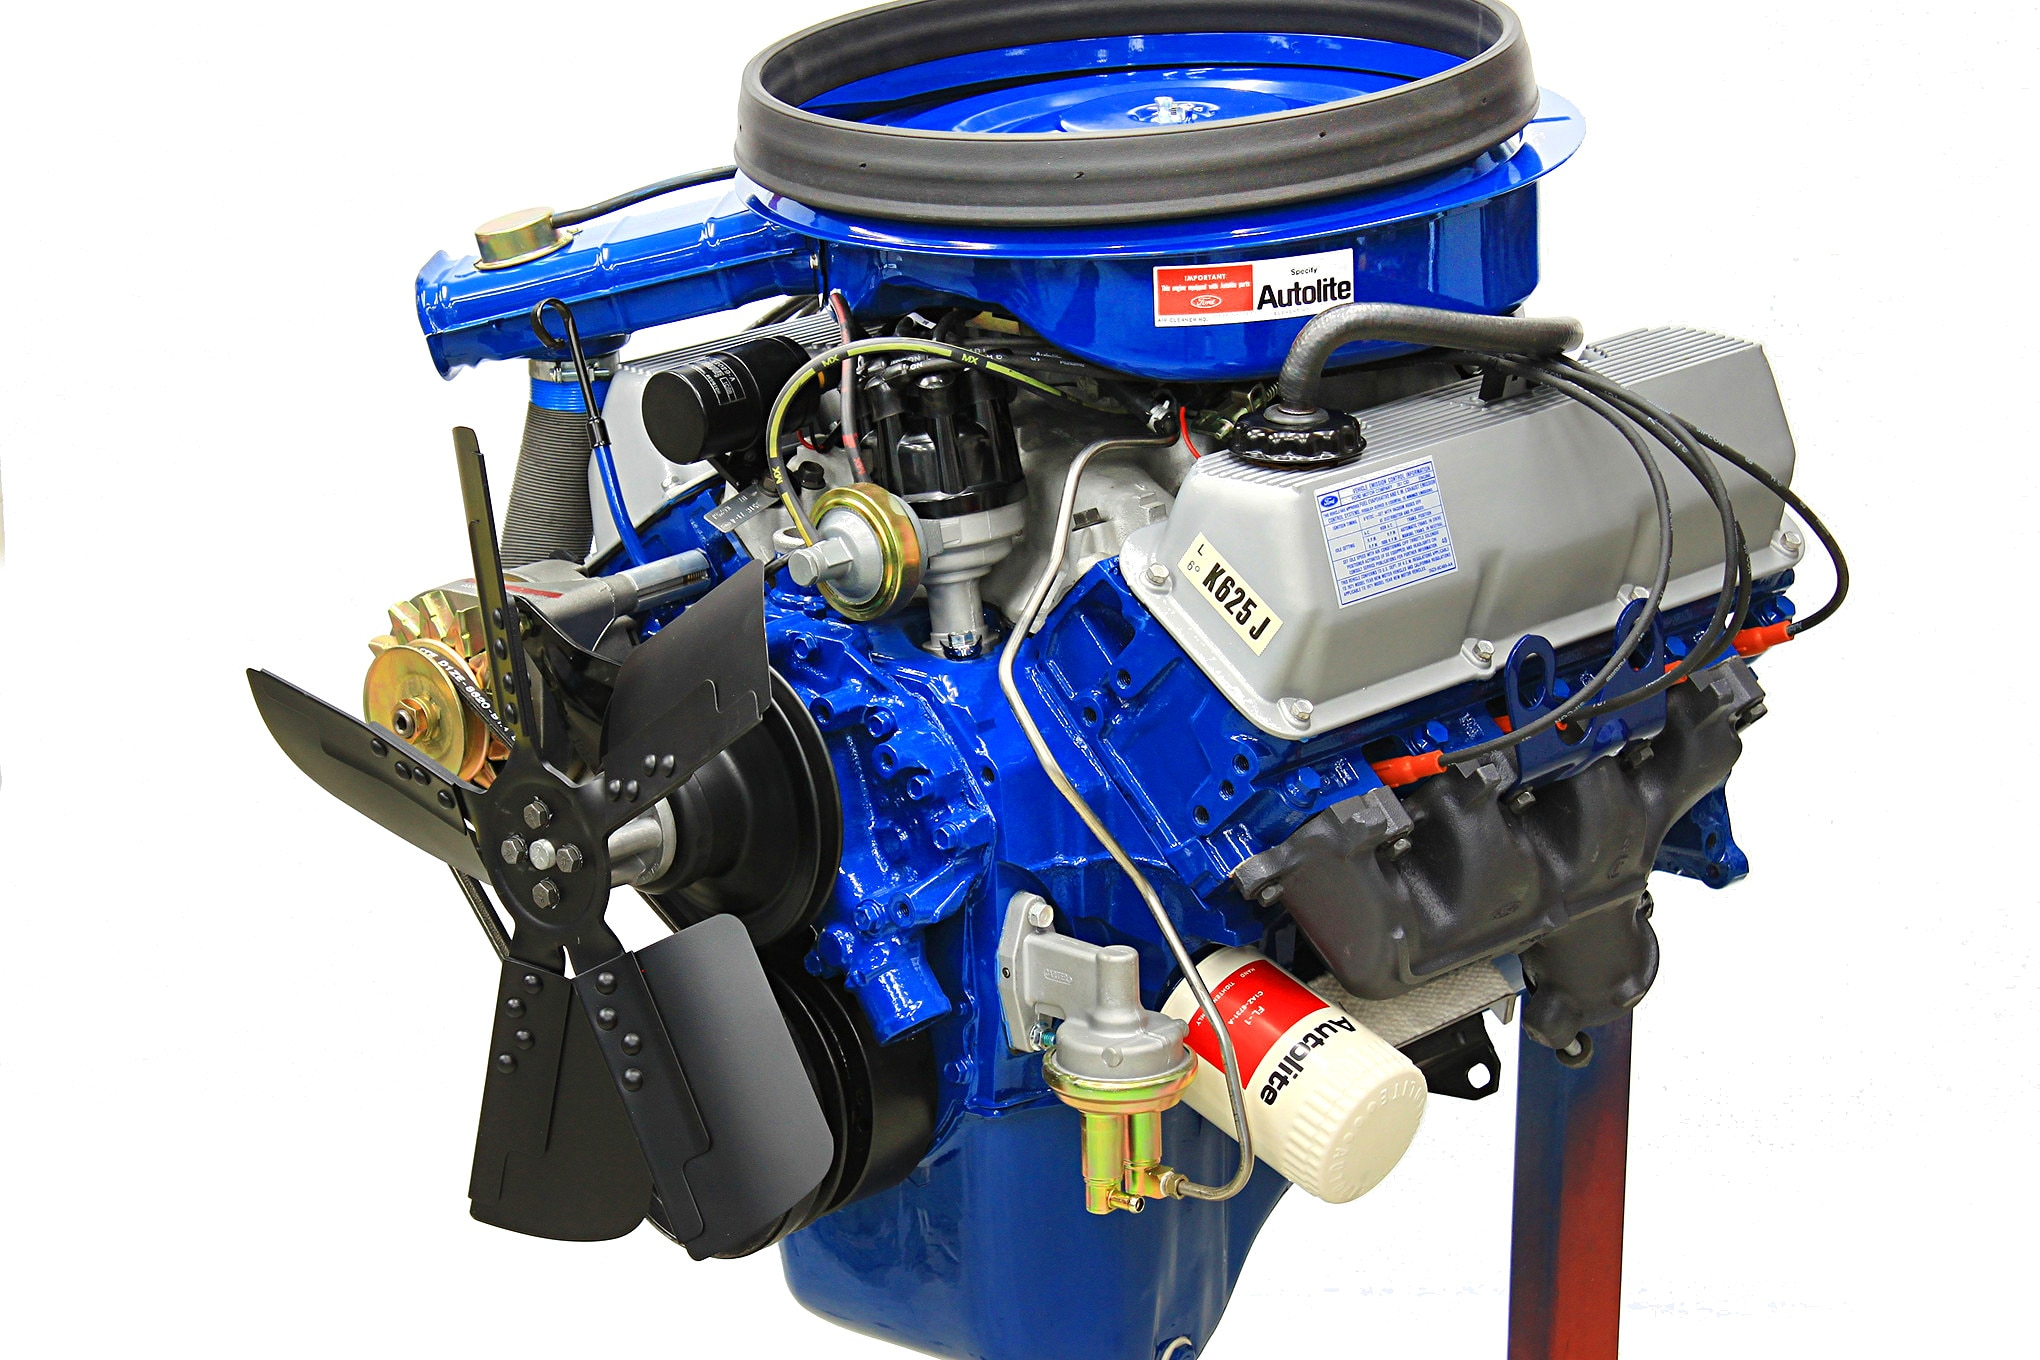 351 Cleveland Engine Wiring Diagram Everything You Need To Know About Ford S 351 Cleveland